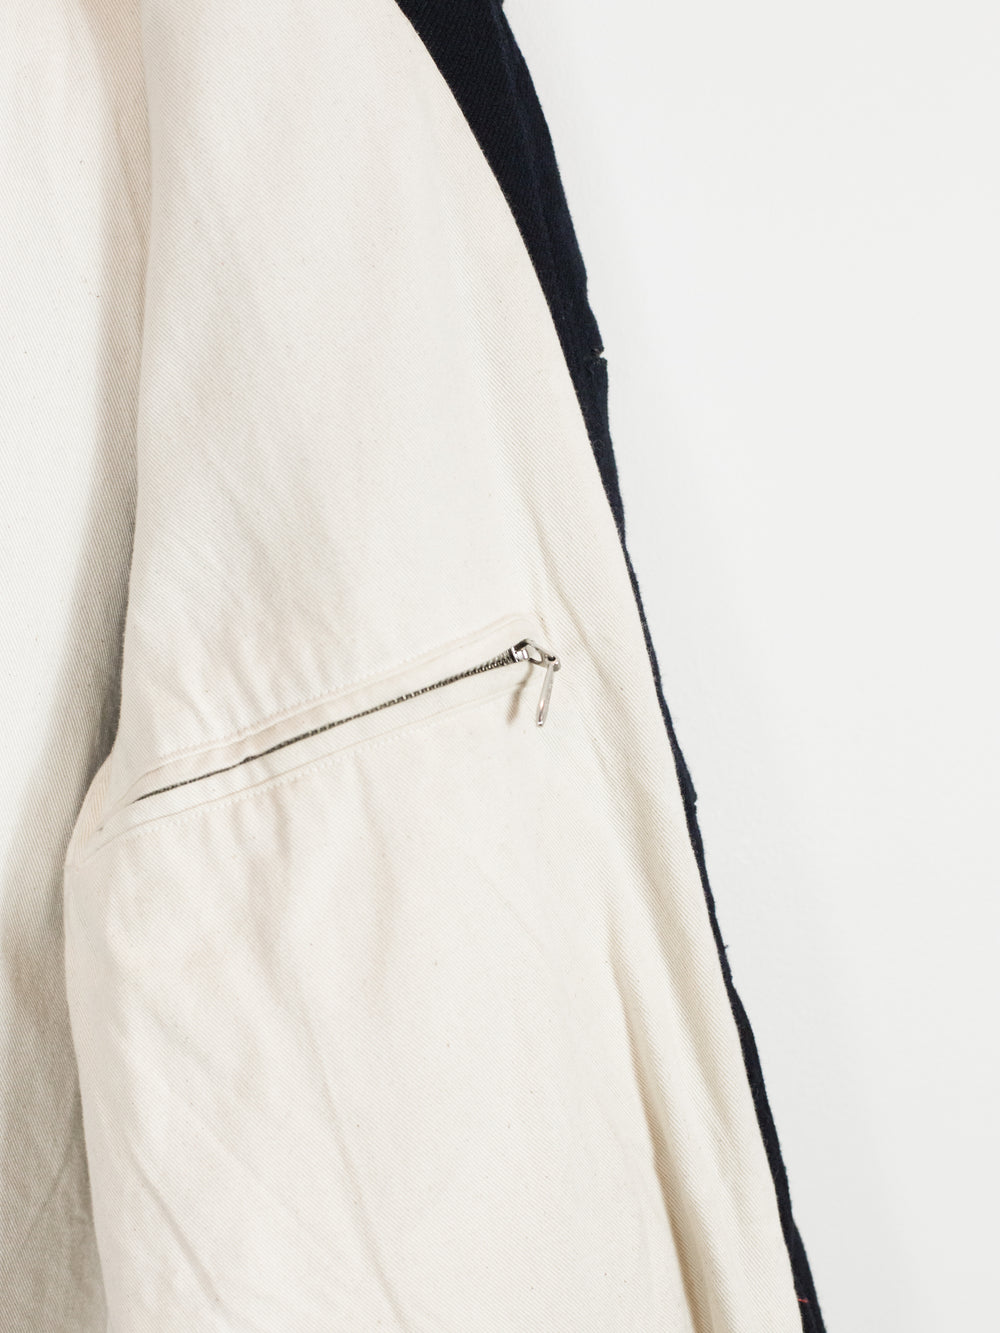 Paul Harnden Wool/Linen Short Mac Coat